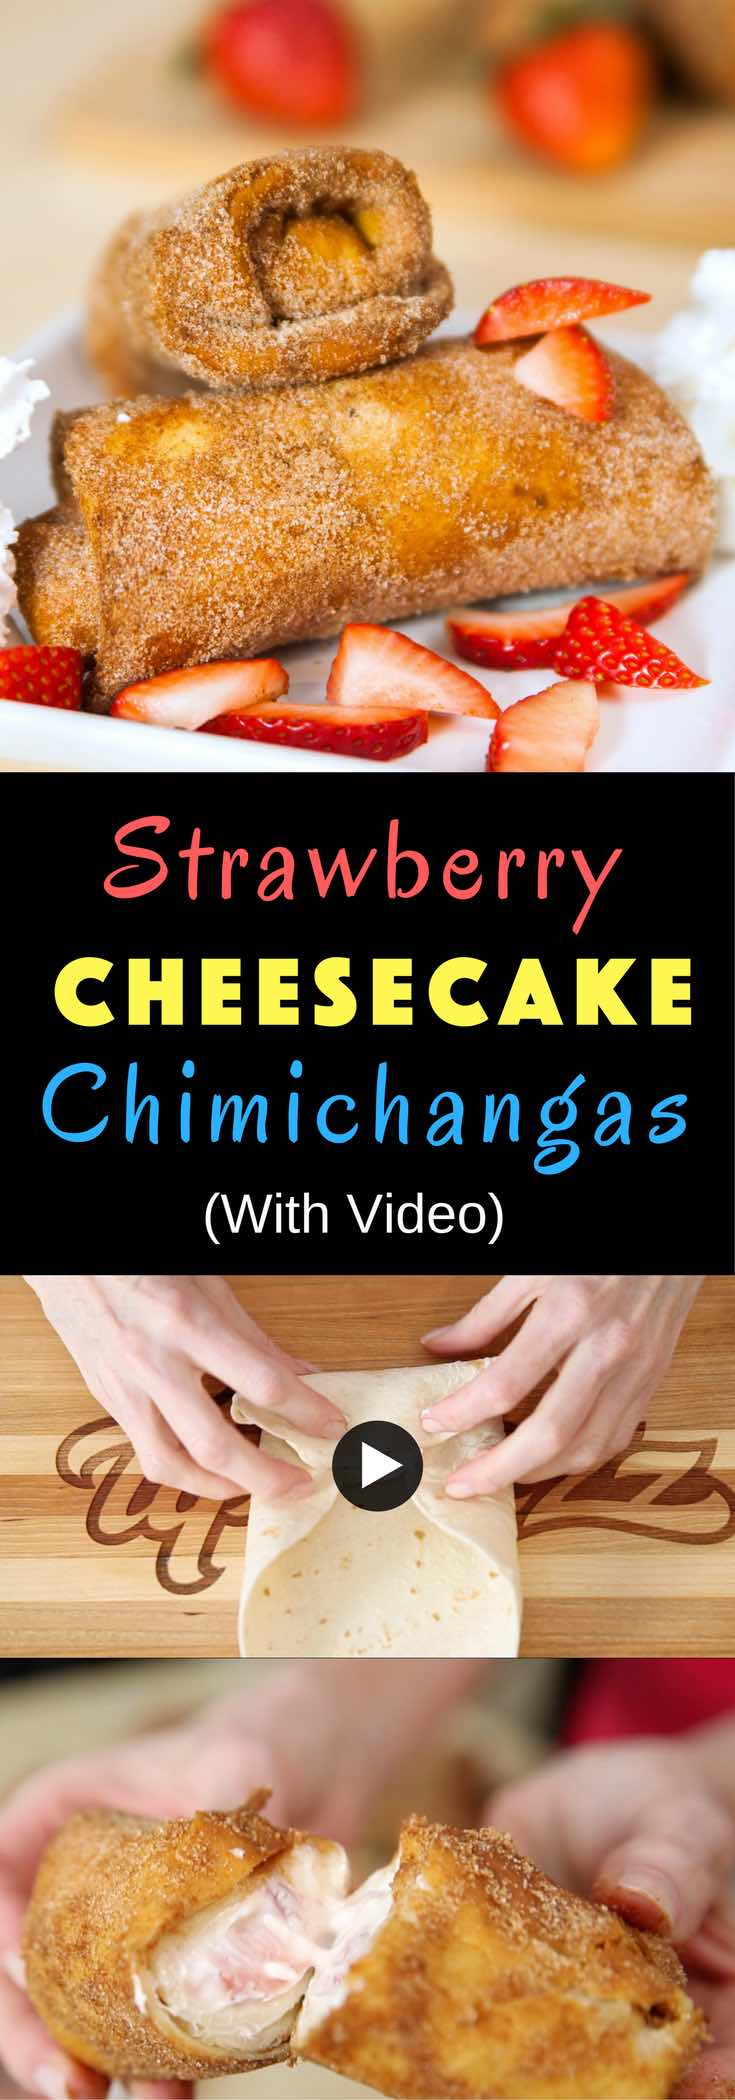 Strawberry Cheesecake Chimichangas are crispy on the outside and creamy inside. This Tex Mex dessert is perfect for any celebration, whether it's a party, birthday or Cinco de Mayo! #chimichangas #cheesecakechimichangas